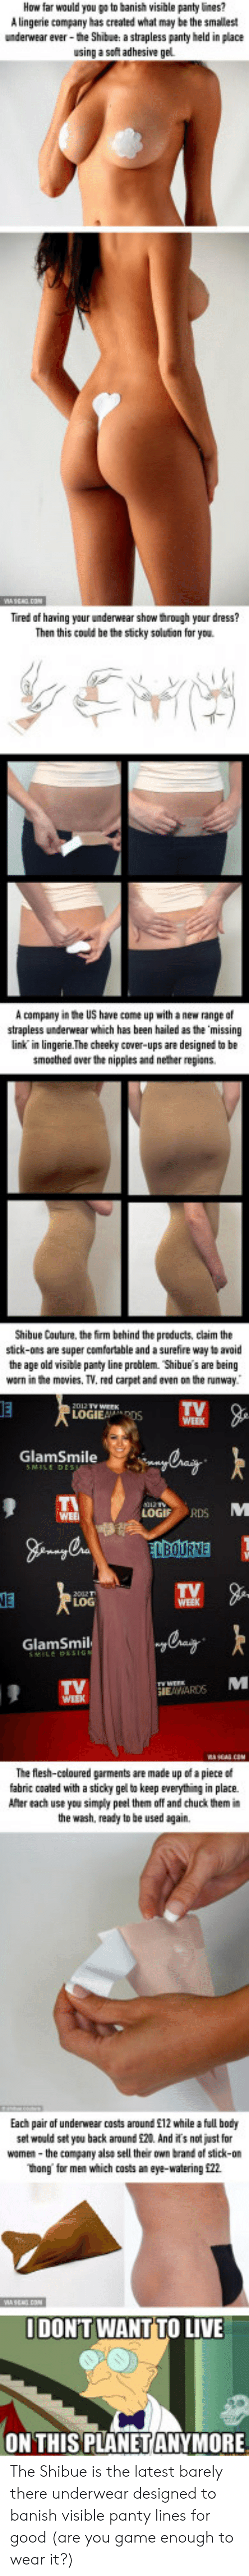 Af, Comfortable, and Movies: ow far  would you go to banish visible panty lines?  A lingerie company has created what may be the smallest  underwear ever-eShibue a strapless panty held in place  using a soft adhesive gel  Tired af having your underwear show through your dress?  Then this could be the sticky solutian for you  A company in the US have come up with a new range of  strapless underwear which has been hailed as the missing  link in lingerie.The cheeky cover-ups are designed to be  smosthed aver the nippies and nether regions  Shibue Couture, the firm behind the products, claim the  stick-ons are super comfortable and a surefire way to avoid  the age old visible panty line problem. Shibue's are being  warn in the movies. TV. red carpet and even on the runway  TV  WEEK  LOGIEDS  GlamSmile  LOGIF RDS  NE  GlamSmil  IEAARDS  The flesh-celoured garments are made up of a piece of  fabric coated with a sticky gel to keep everything in place.  Afer each use you simply peel them off and chuck them in  the wash, ready to be used again.  Each pair of underwear costs around £12 while a full body  set would set you back around 20. And its not just for  women-the company also sell their own brand of stick-on  hong for men which casts an eye-watering 22  IDON'T WANT TO LIVE  ON THIS PLANETANYMORE The Shibue is the latest barely there underwear designed to banish visible panty lines for good (are you game enough to wear it?)